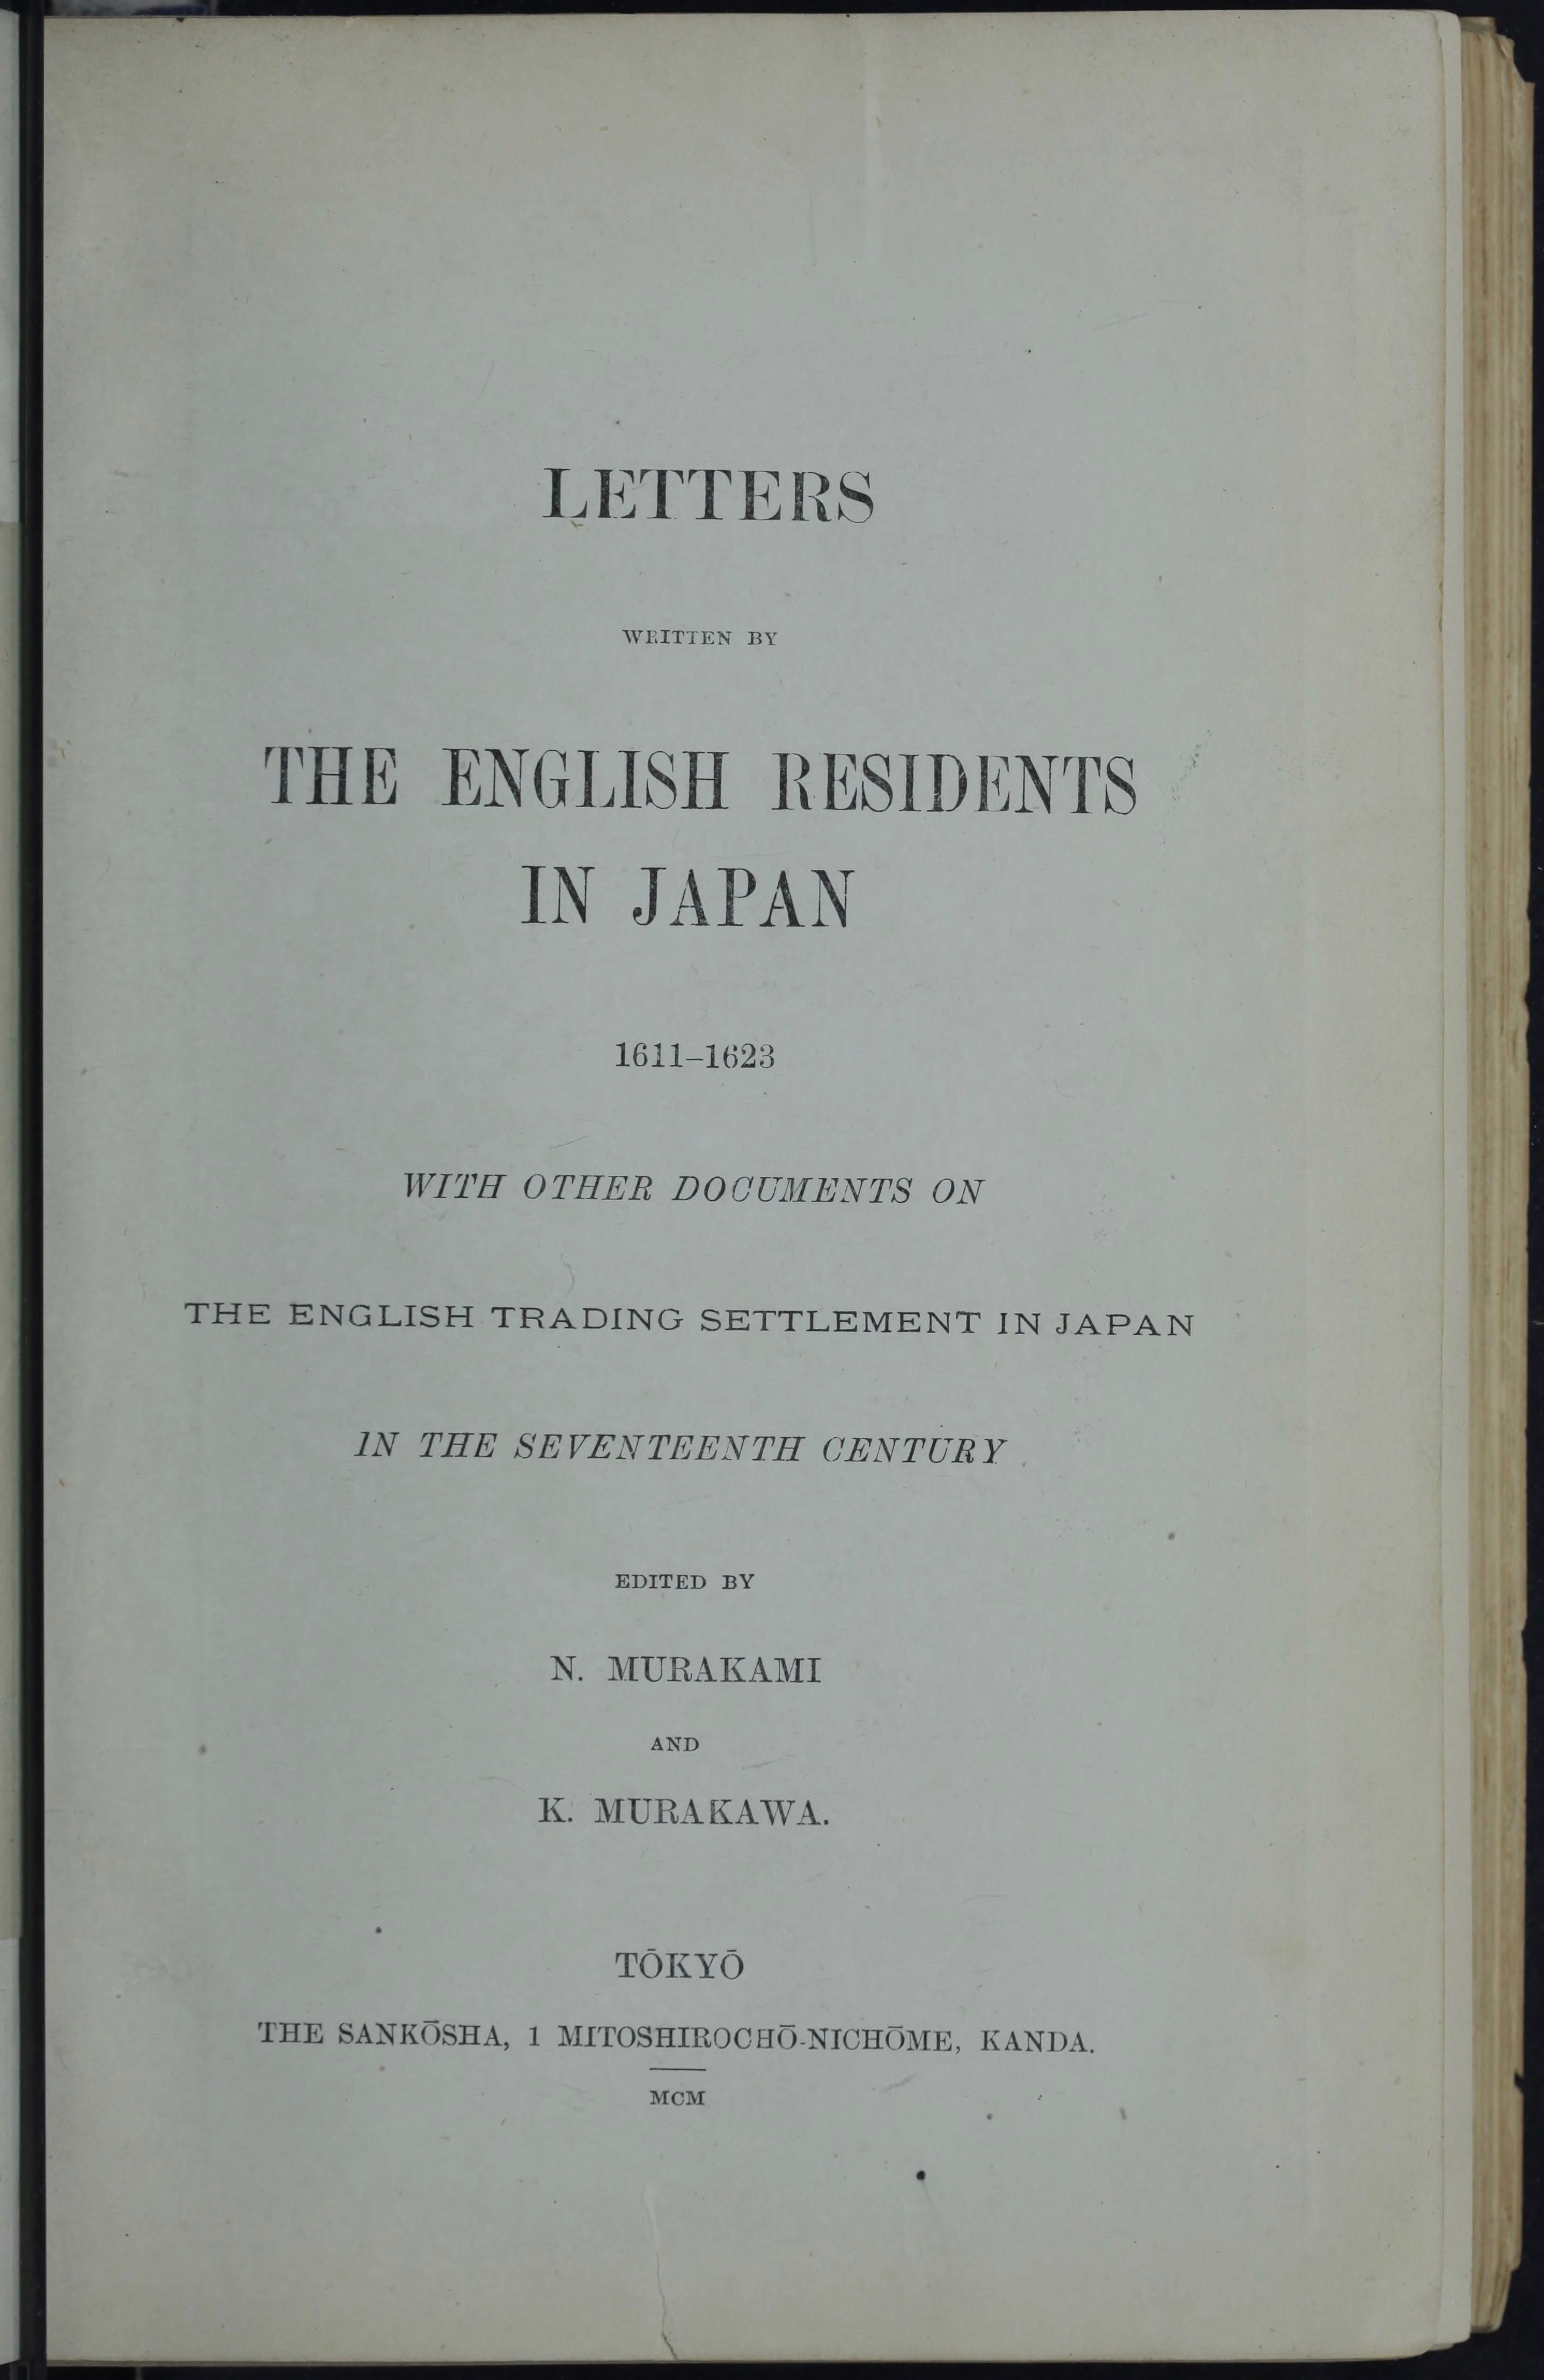 The English Residents in Japan